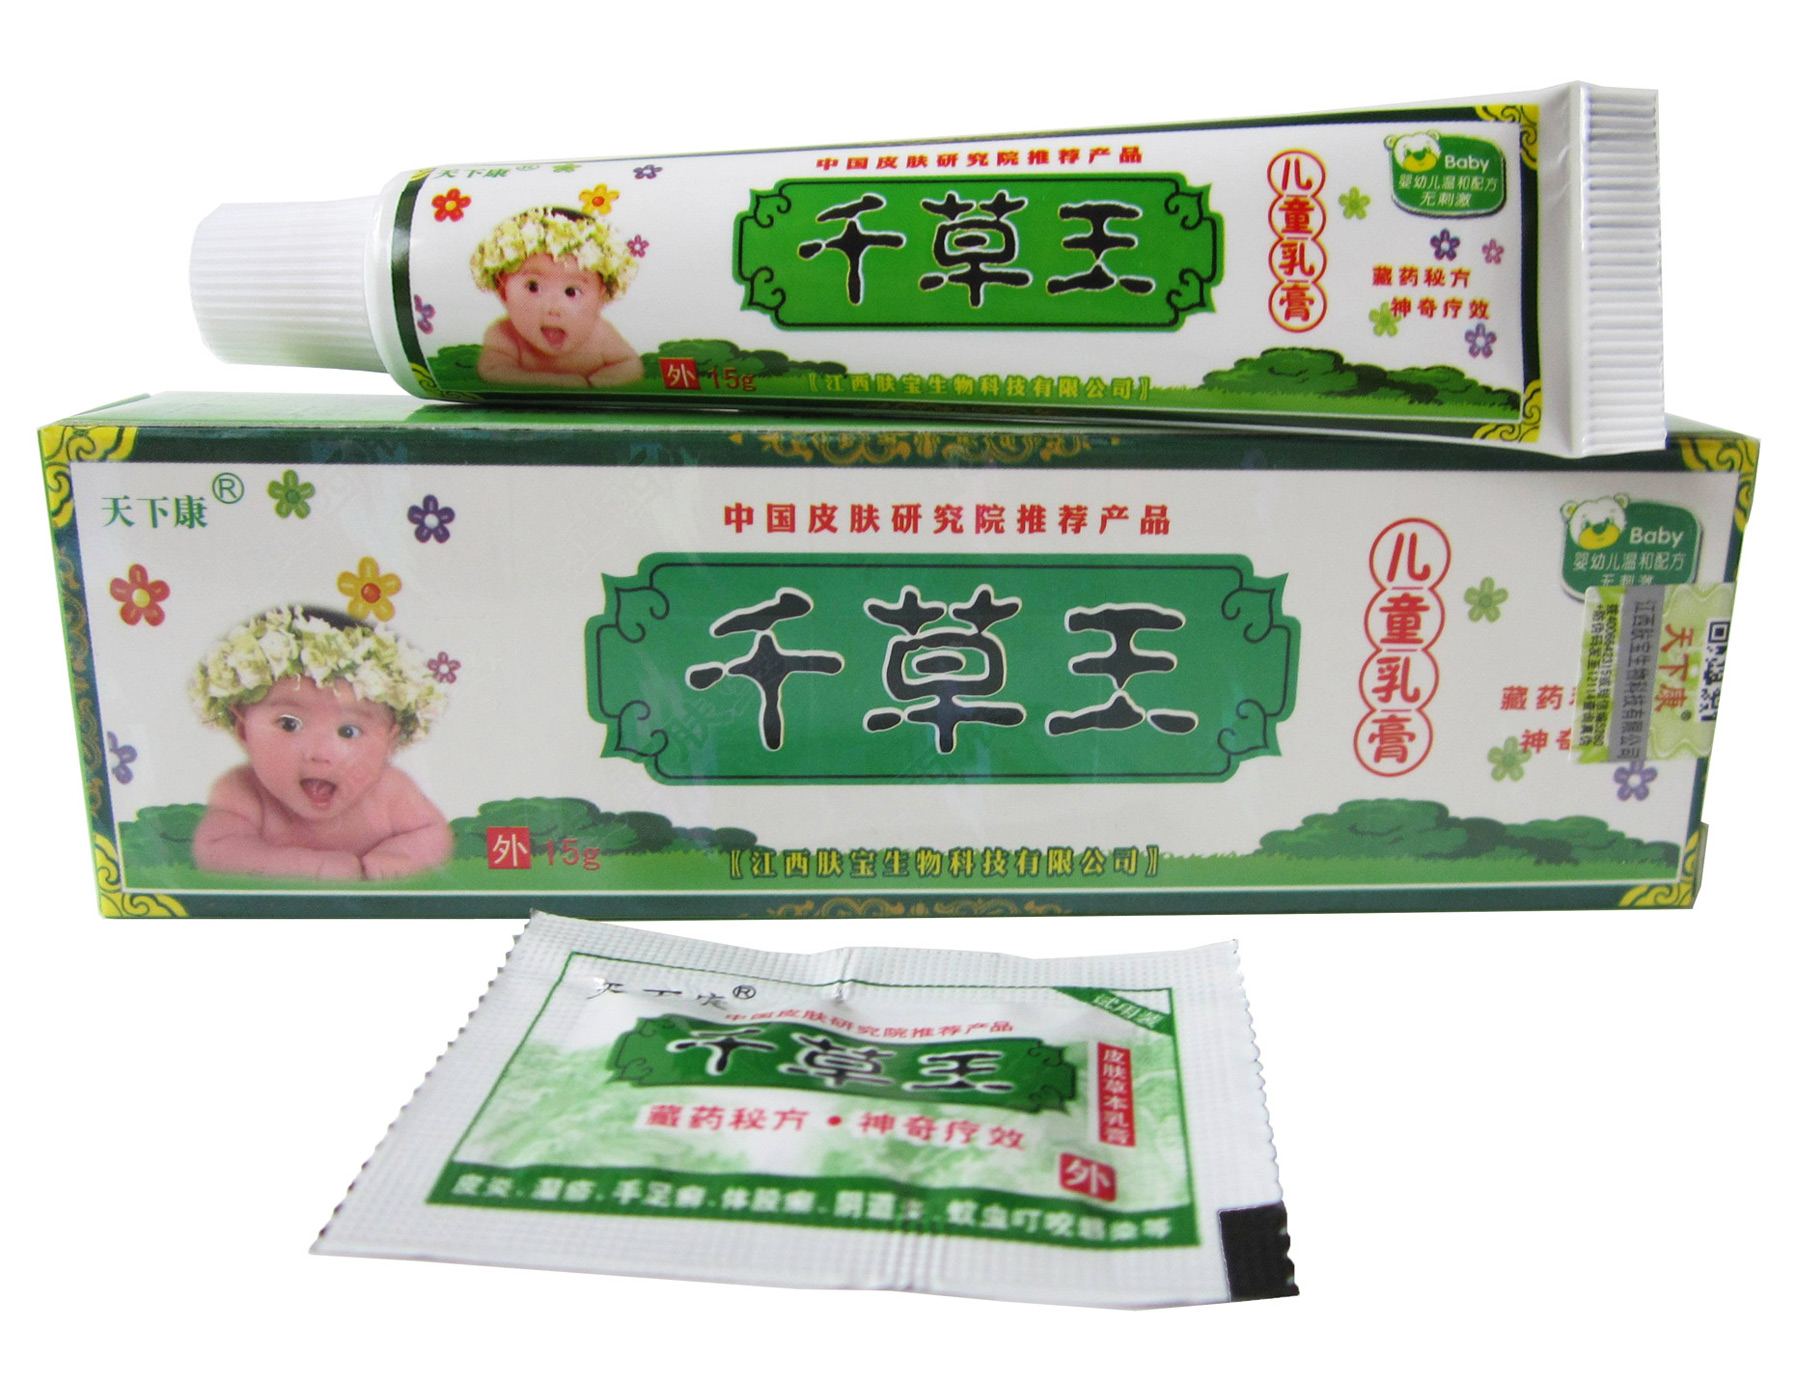 World chigusa wang kang children cream [buy 、 and asked to send customer service] thousands of grass ointment infant bao bao vang pao For infants and young children